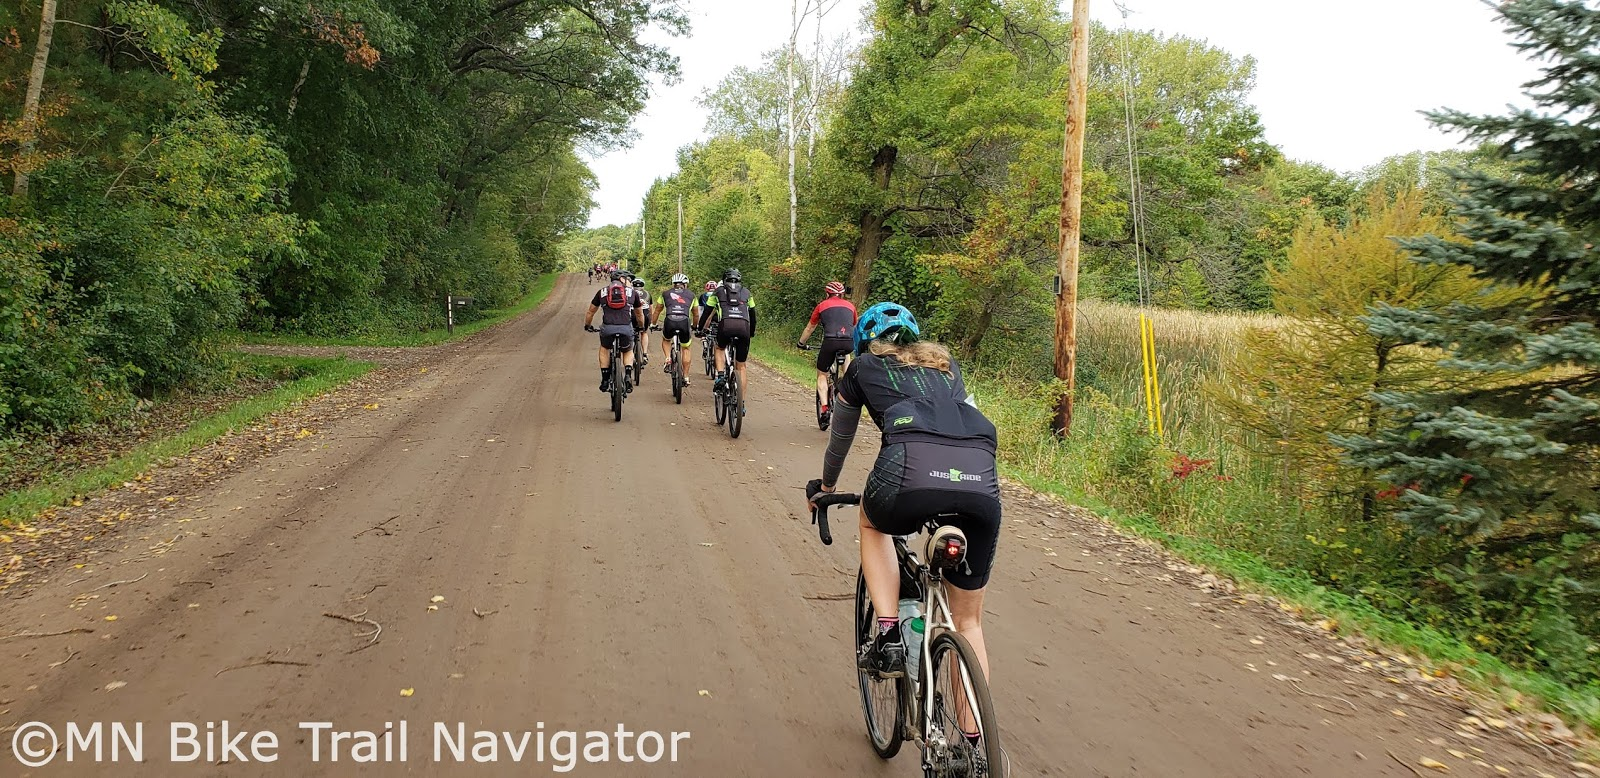 Cycling Events Mn Thanksgiving 2020.Mn Bike Trail Navigator 2020 Minnesota Gravel Events